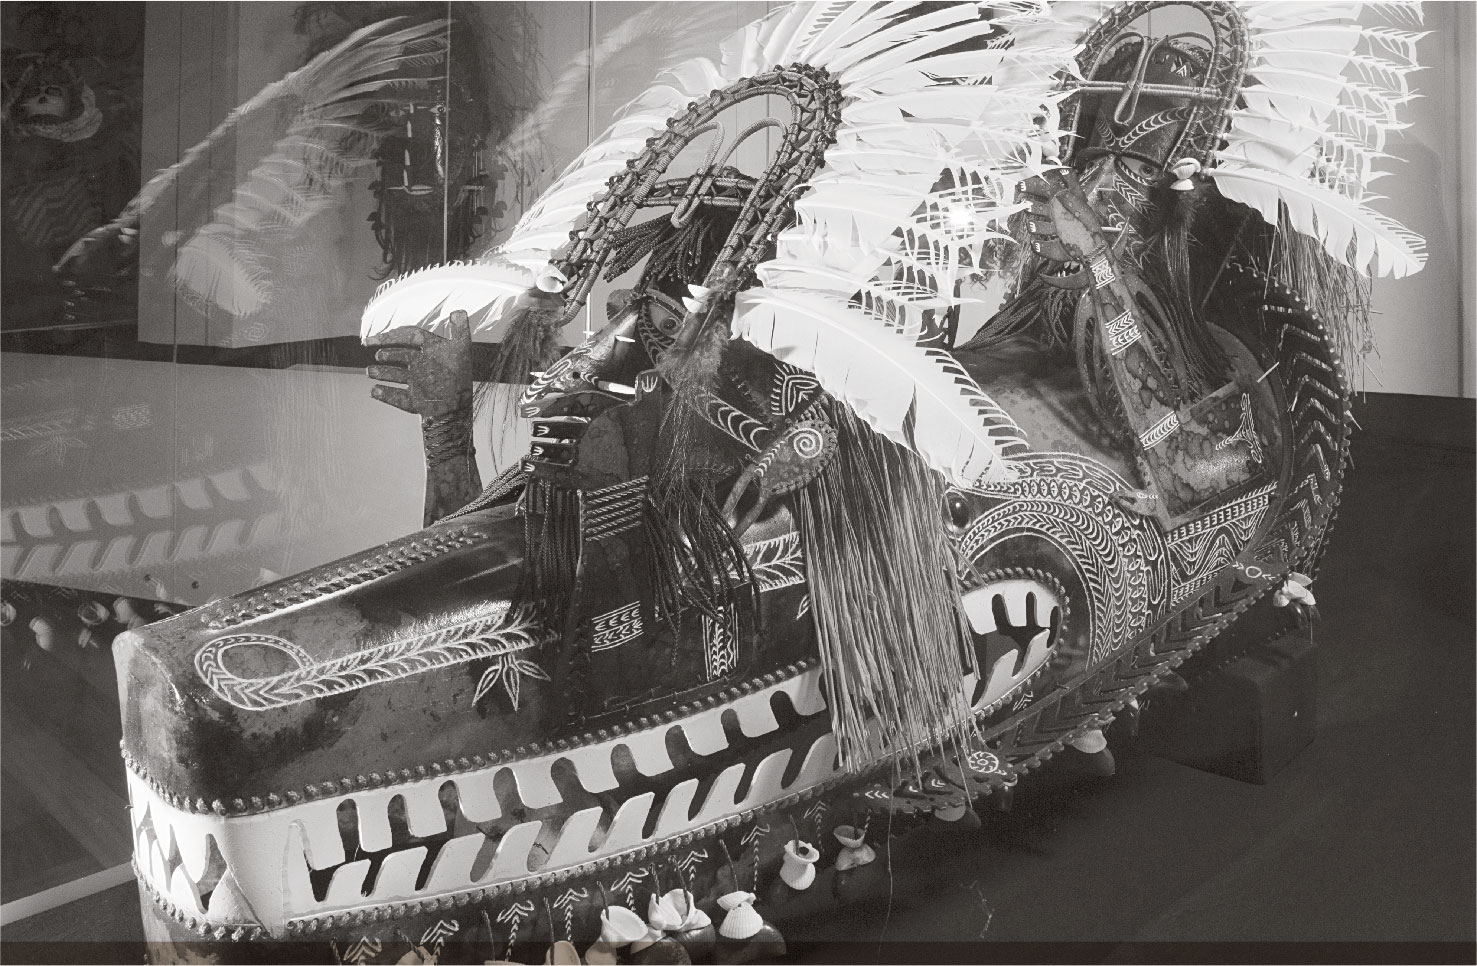 a photograph of PROMINENT TORRES STRAIT ARTIST ALICK TIPOTI'S MASK 'KOEDAL AWGADHALAYG' AT THE NATIONAL MUSEUM OF AUSTRALIA.